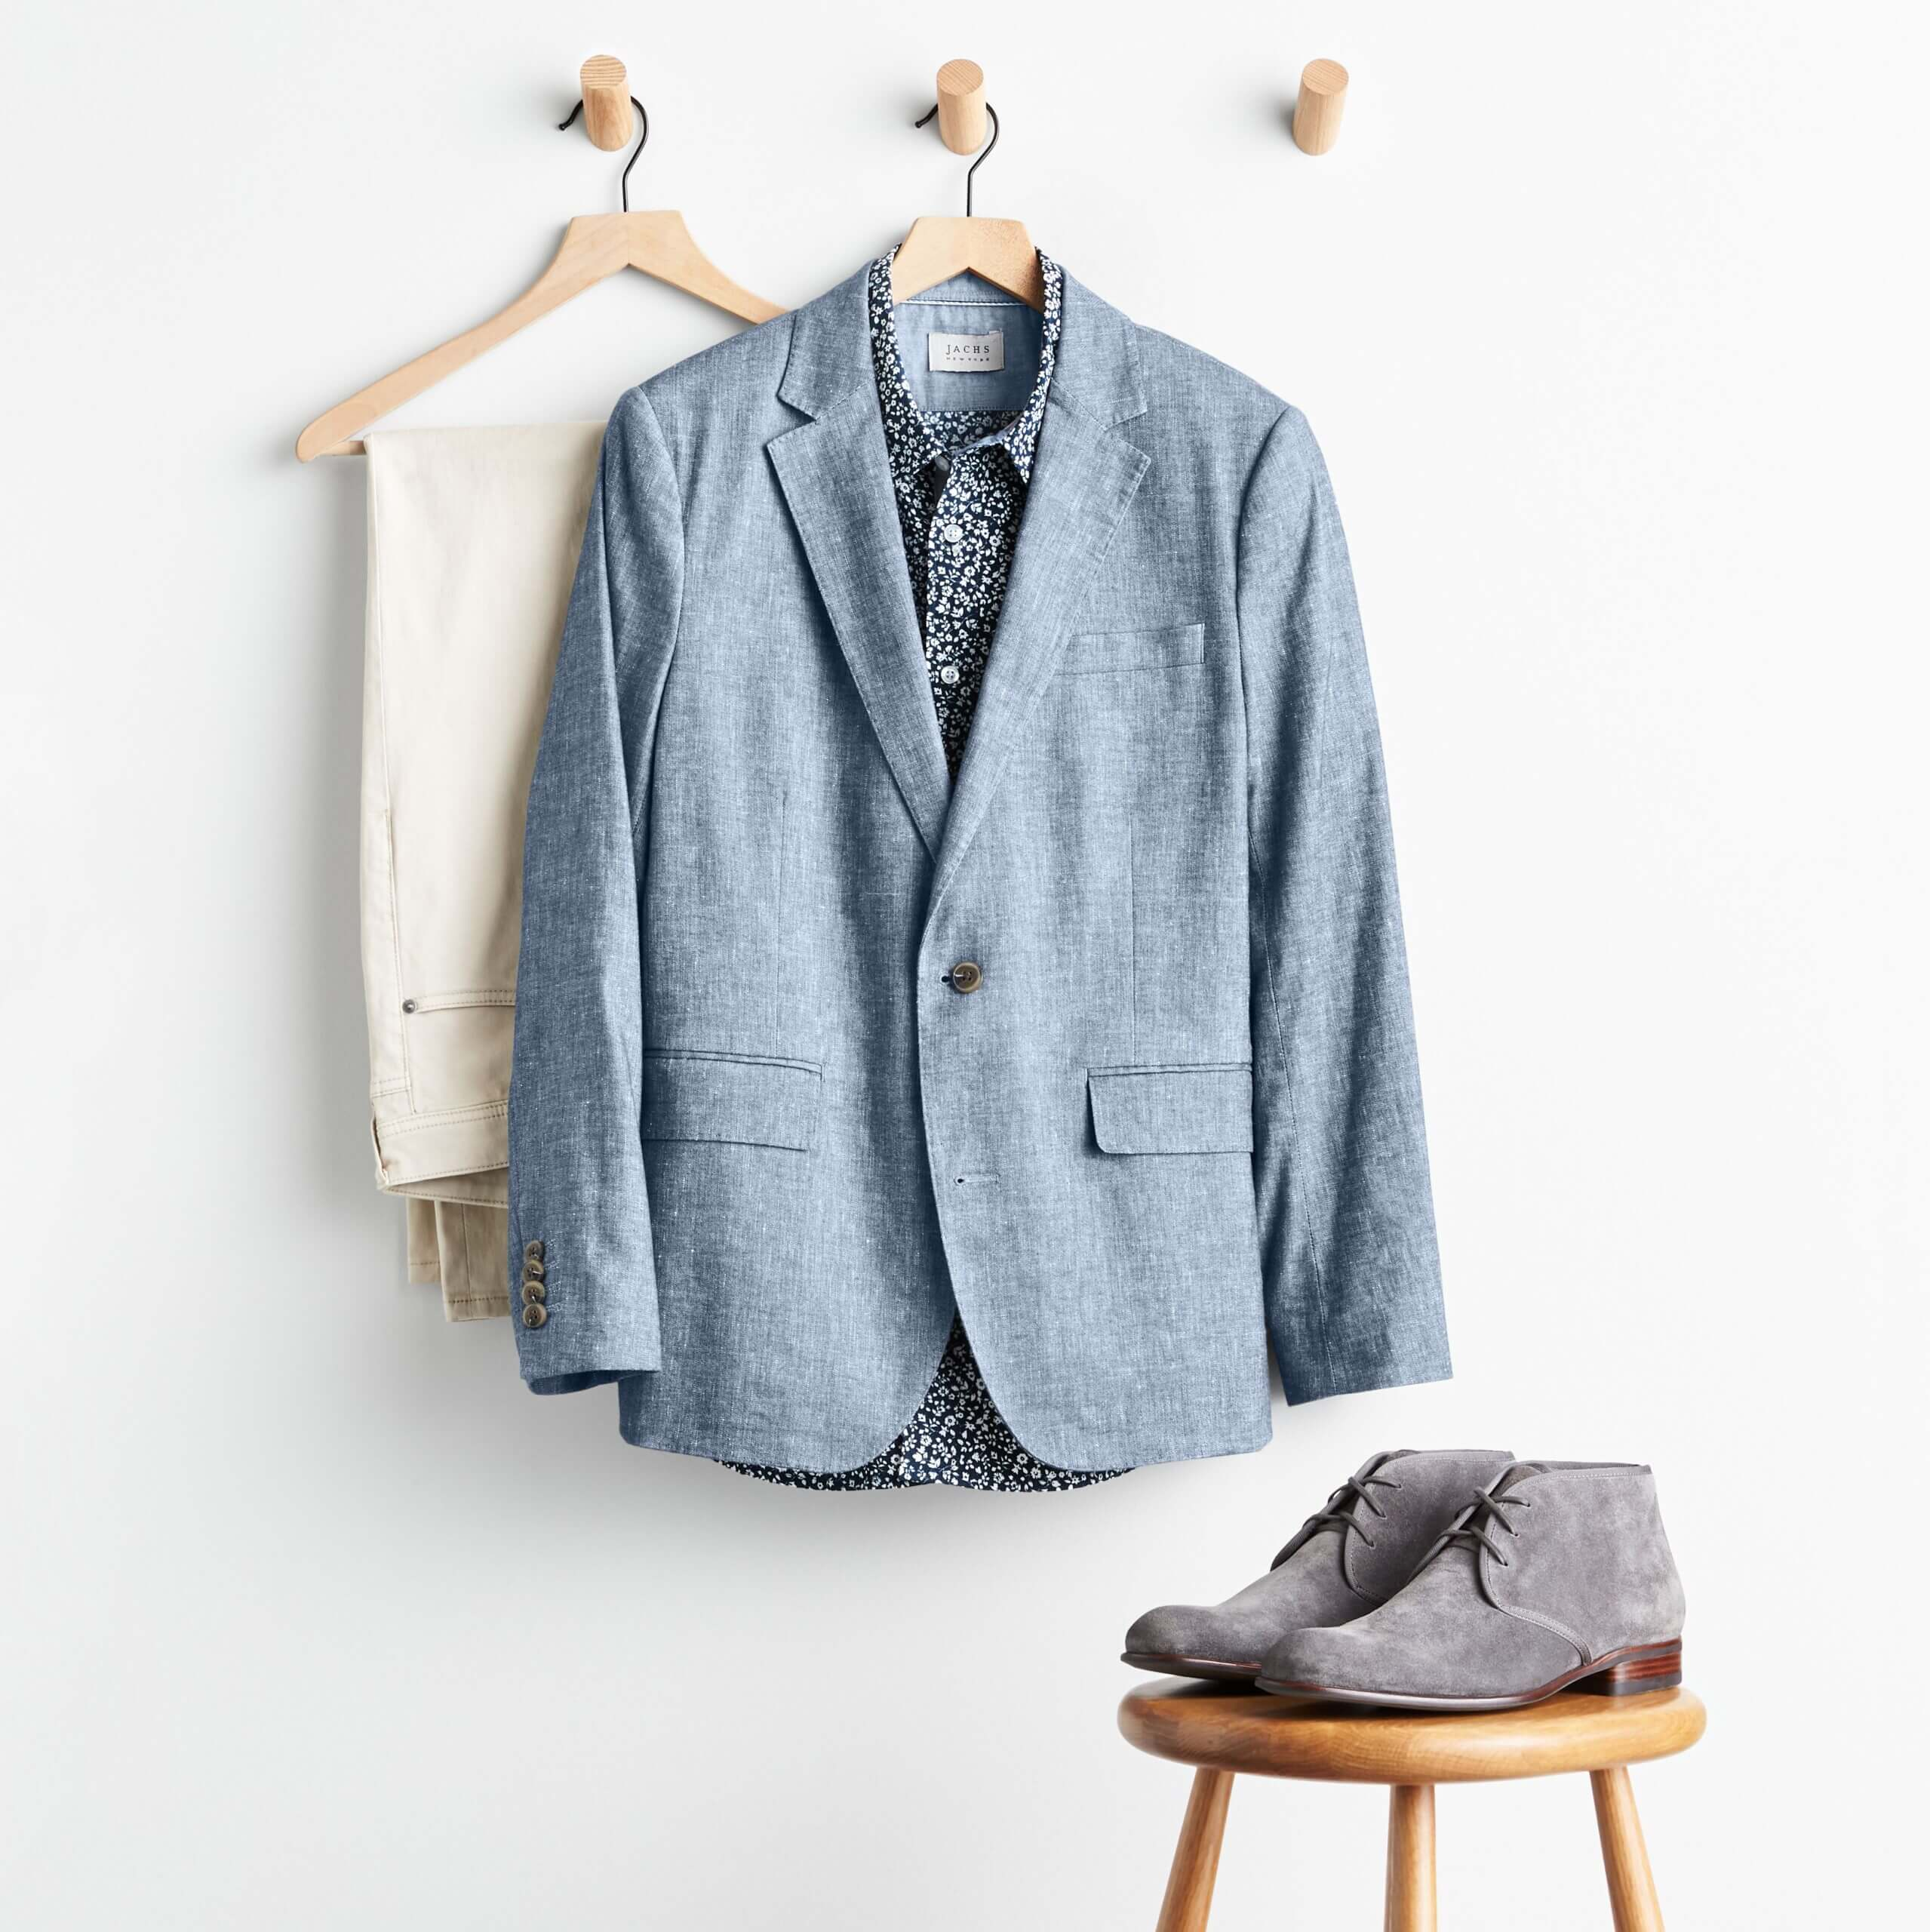 Stitch Fix men's outfit with off-white denim, navy micro-floral button-down shirt and chambray blazer hanging from wall pegs with grey suede chukka boots on stool.